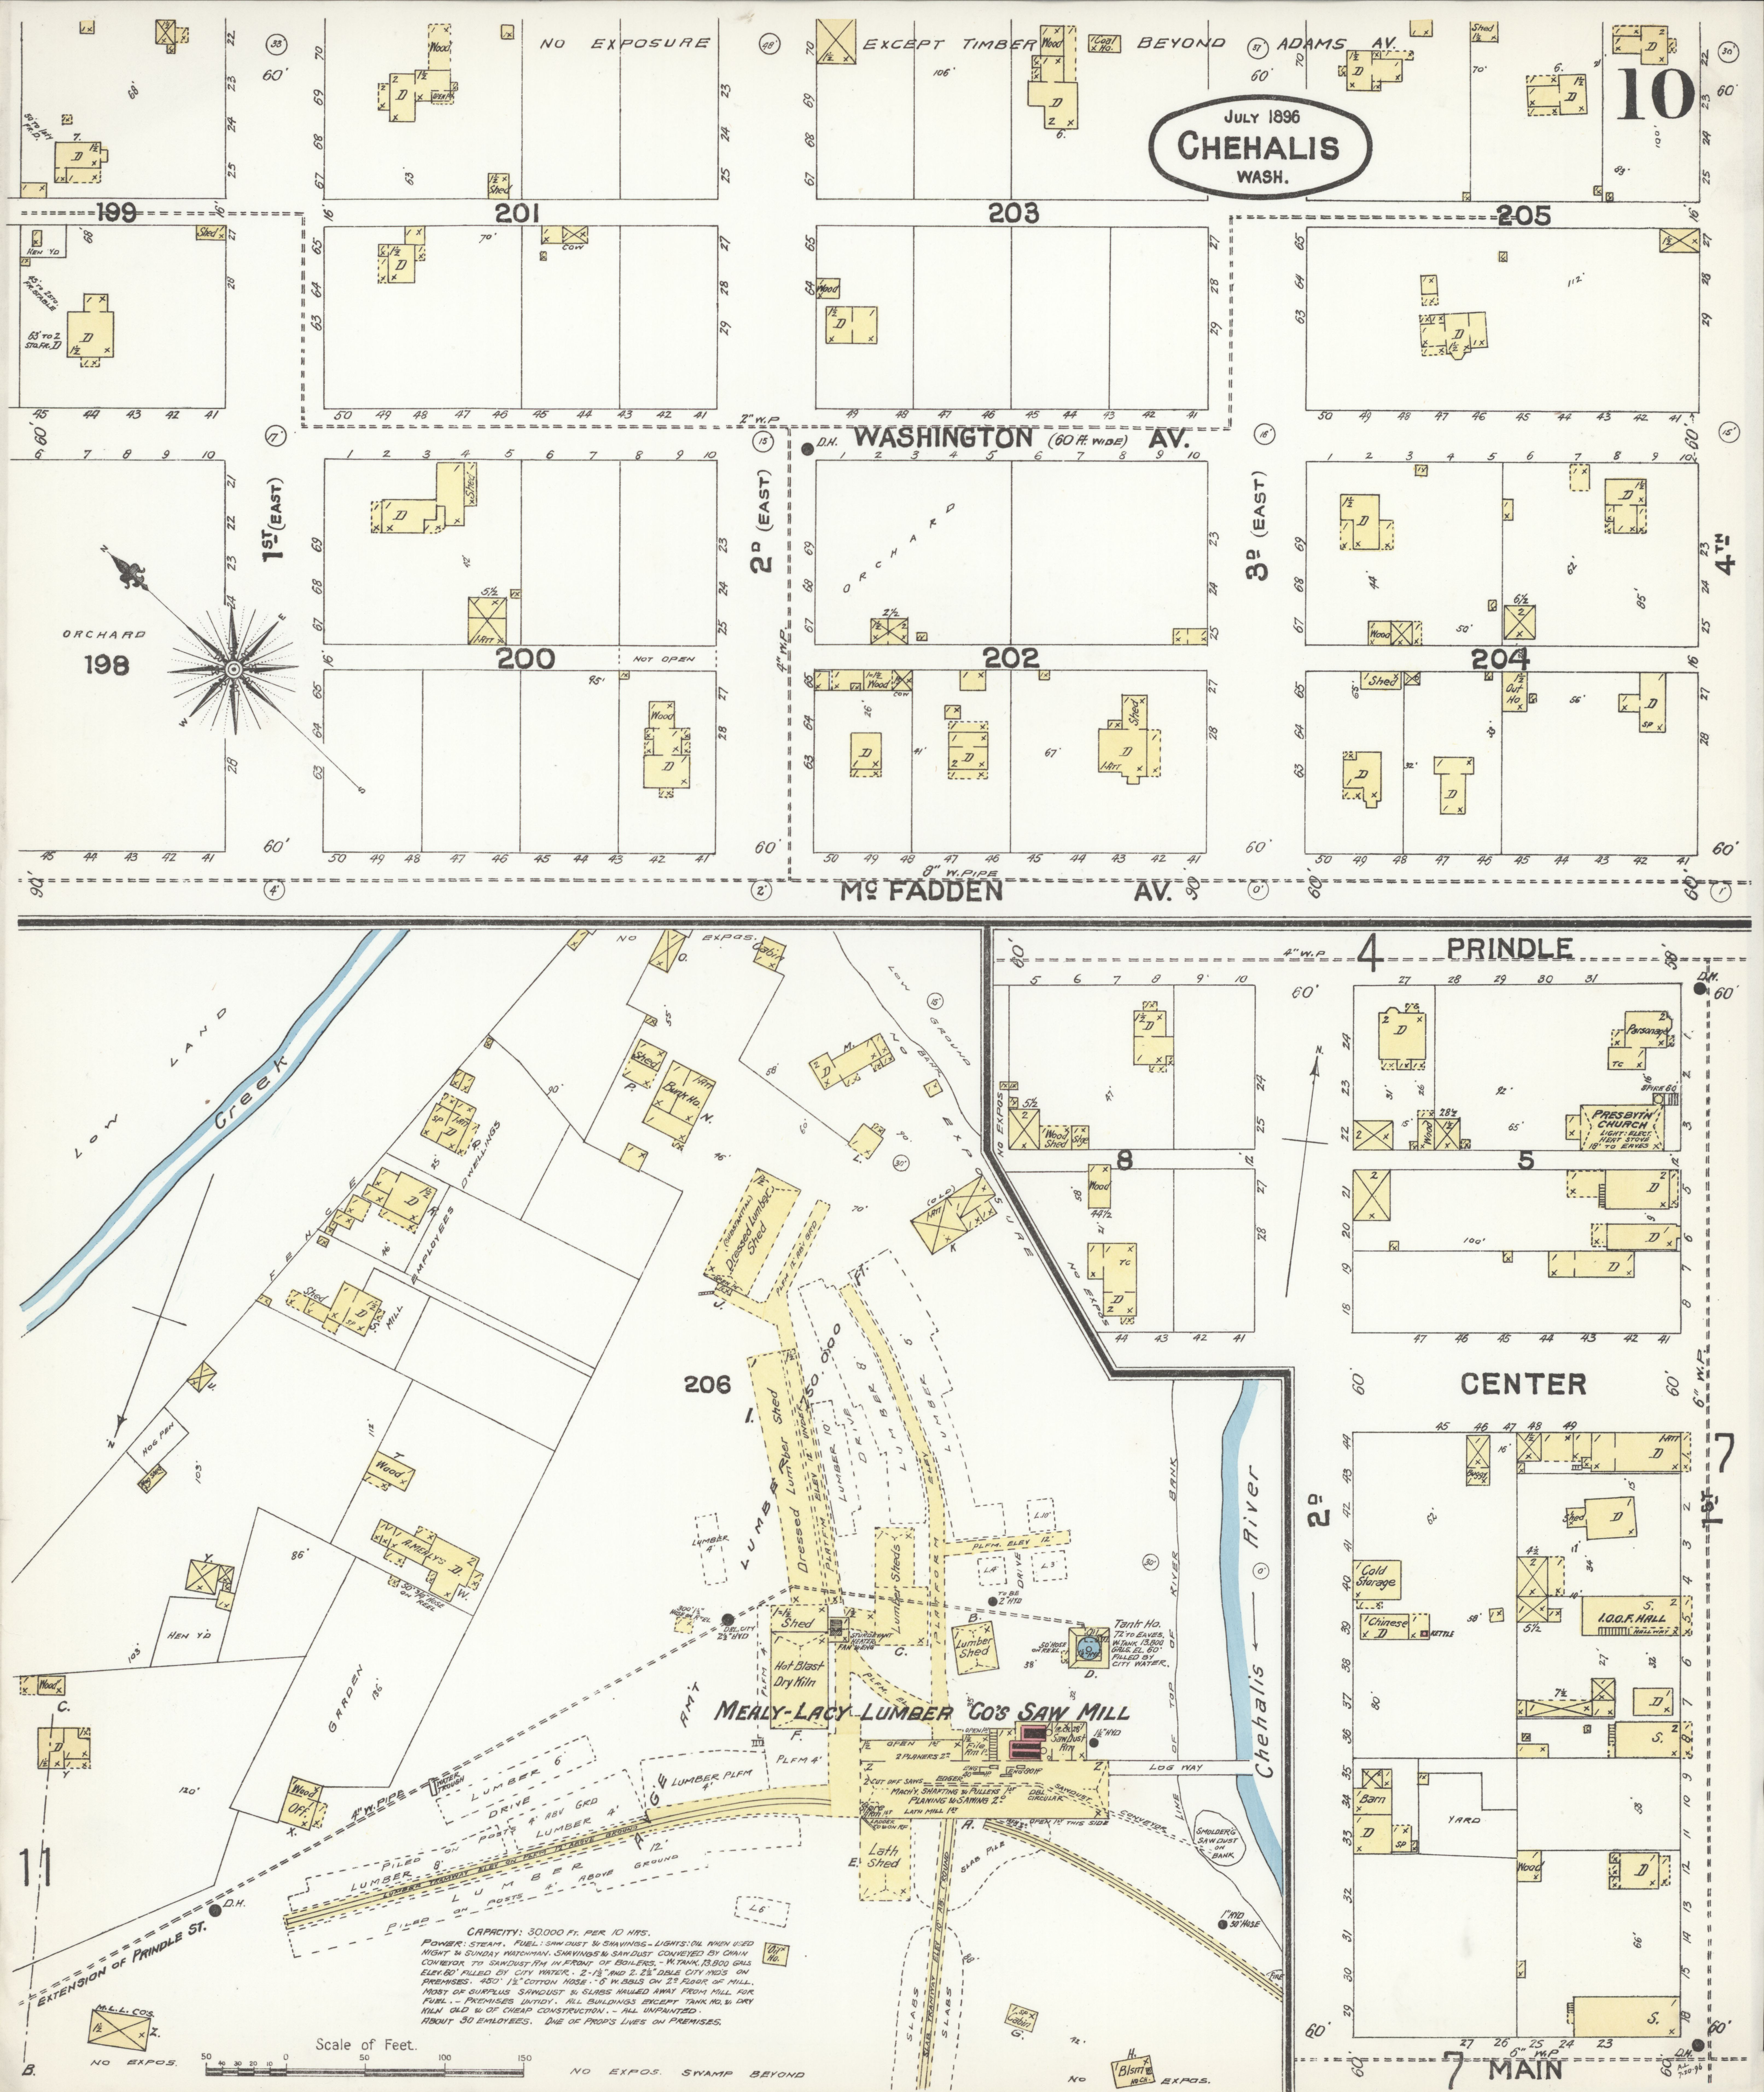 Lewis County Washington Map.File Sanborn Fire Insurance Map From Chehalis Lewis County